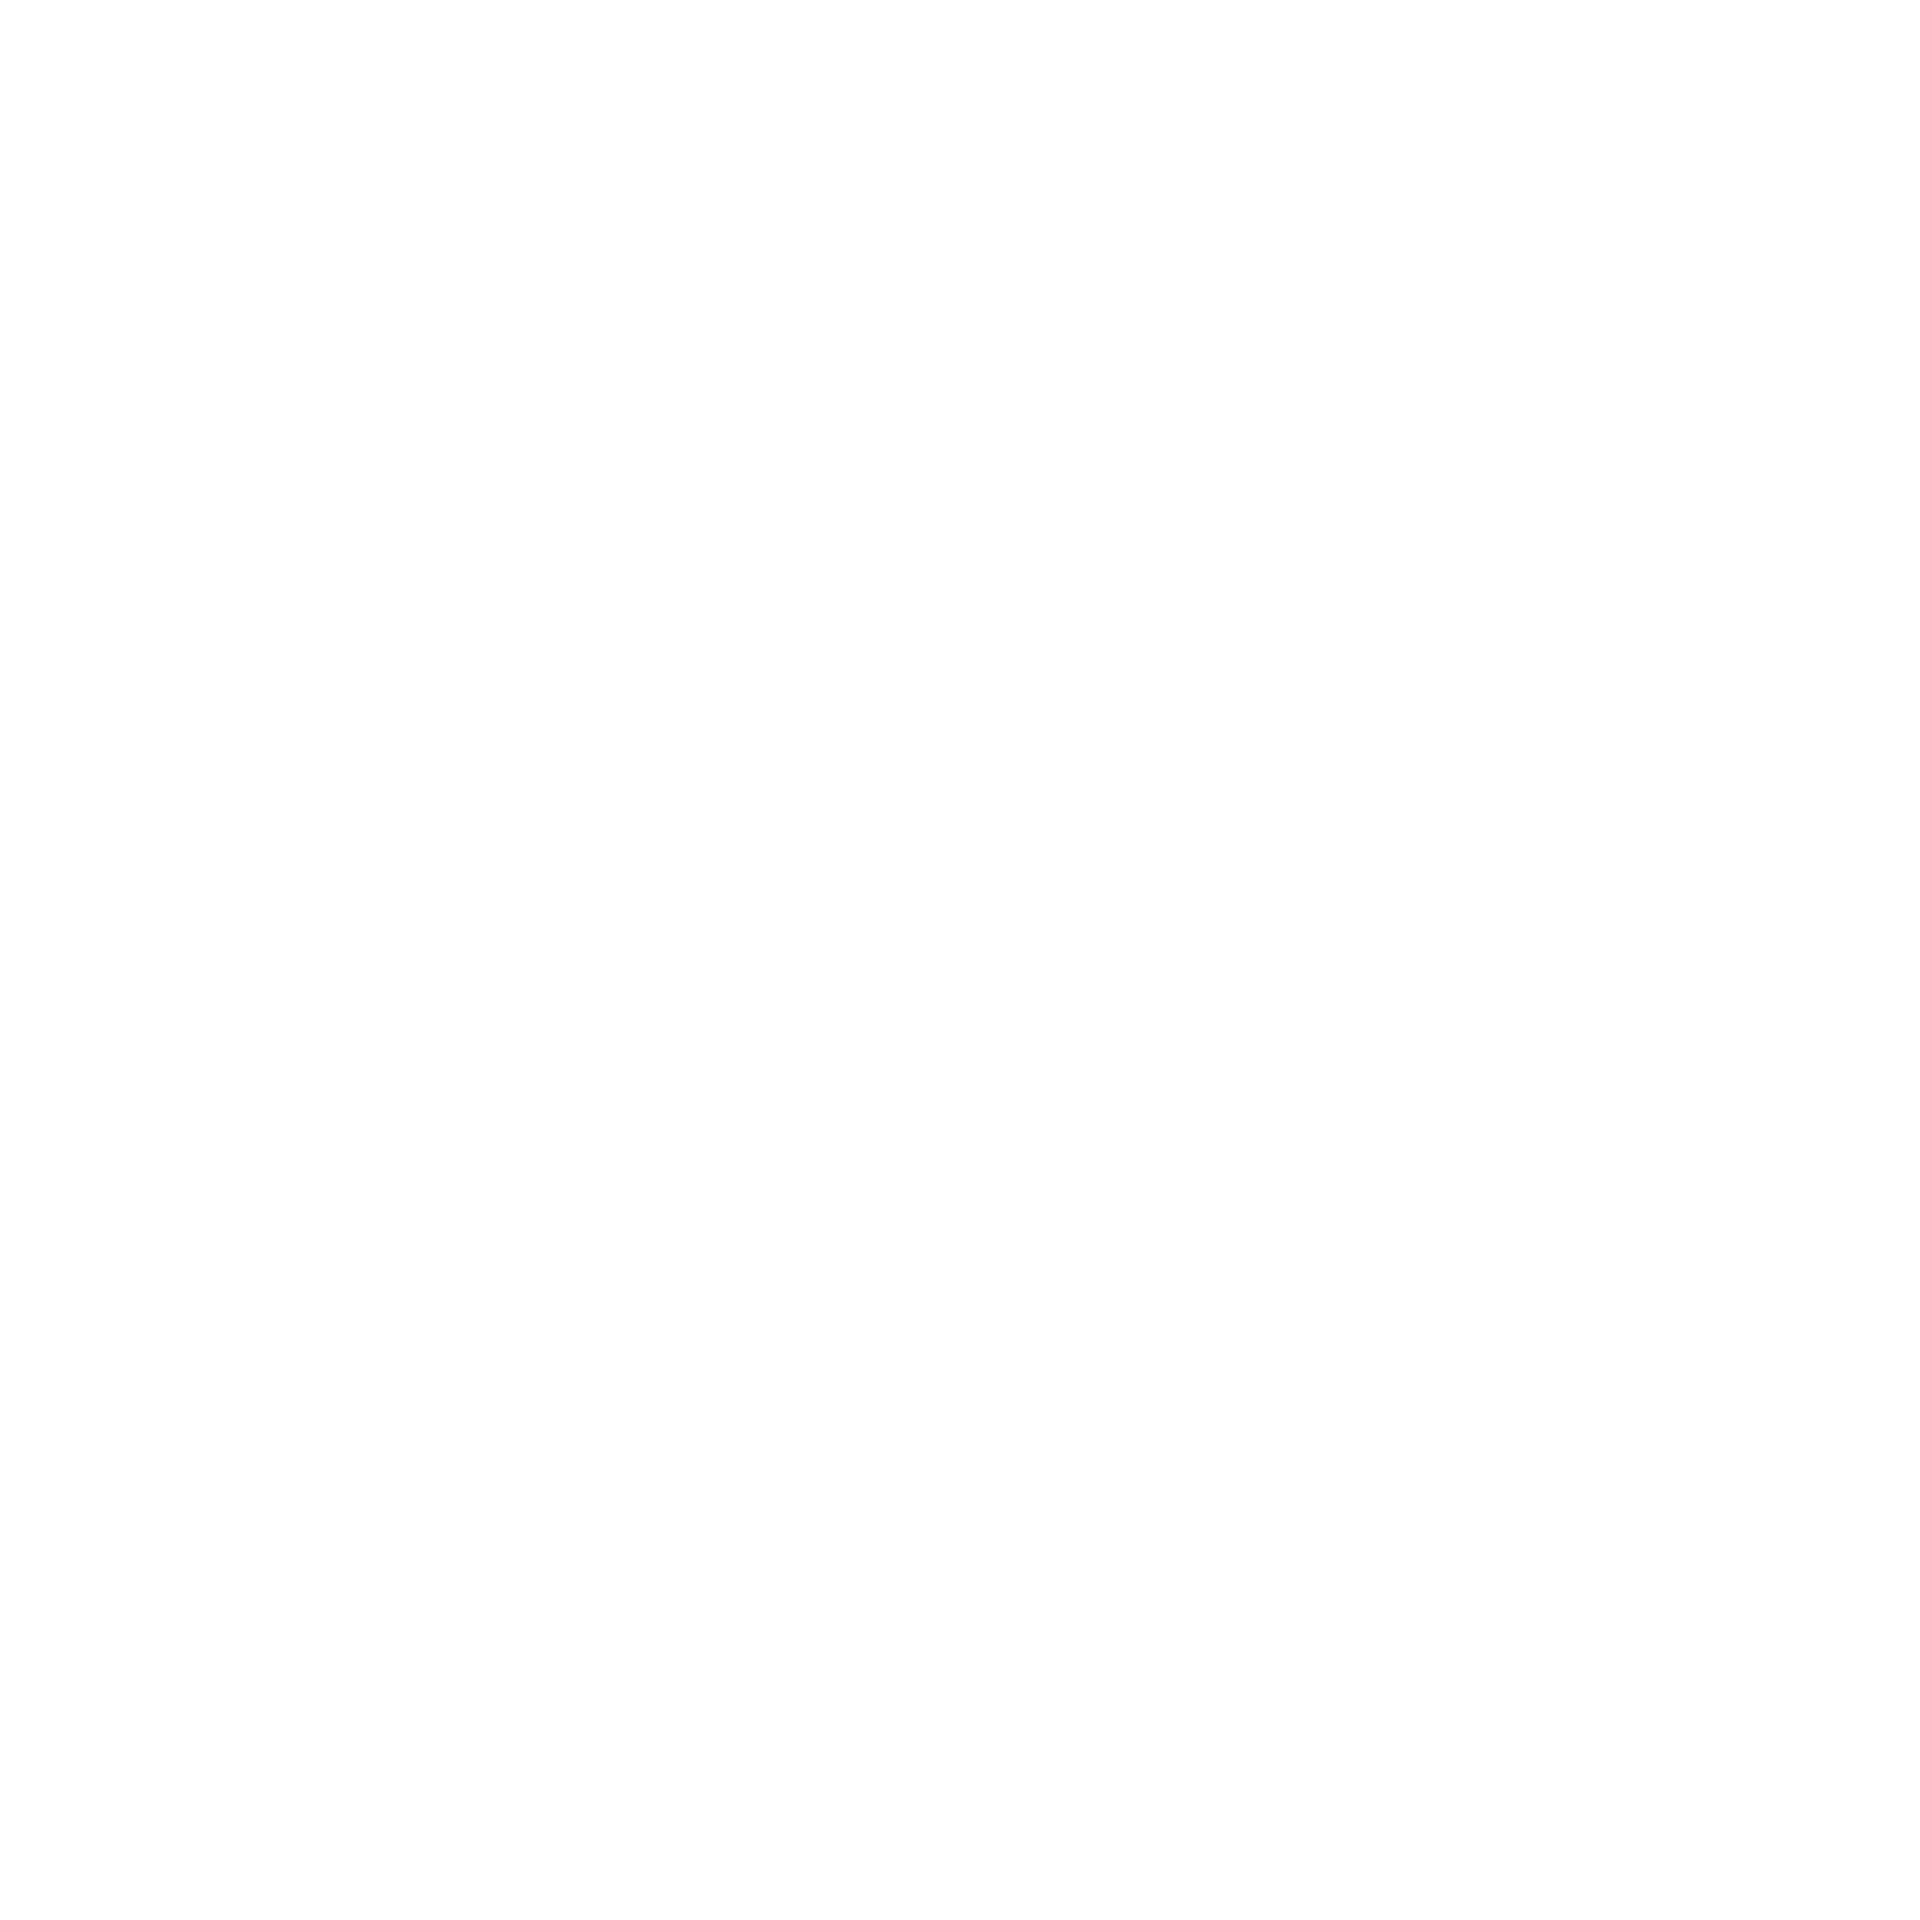 One Woman Army by Ametist